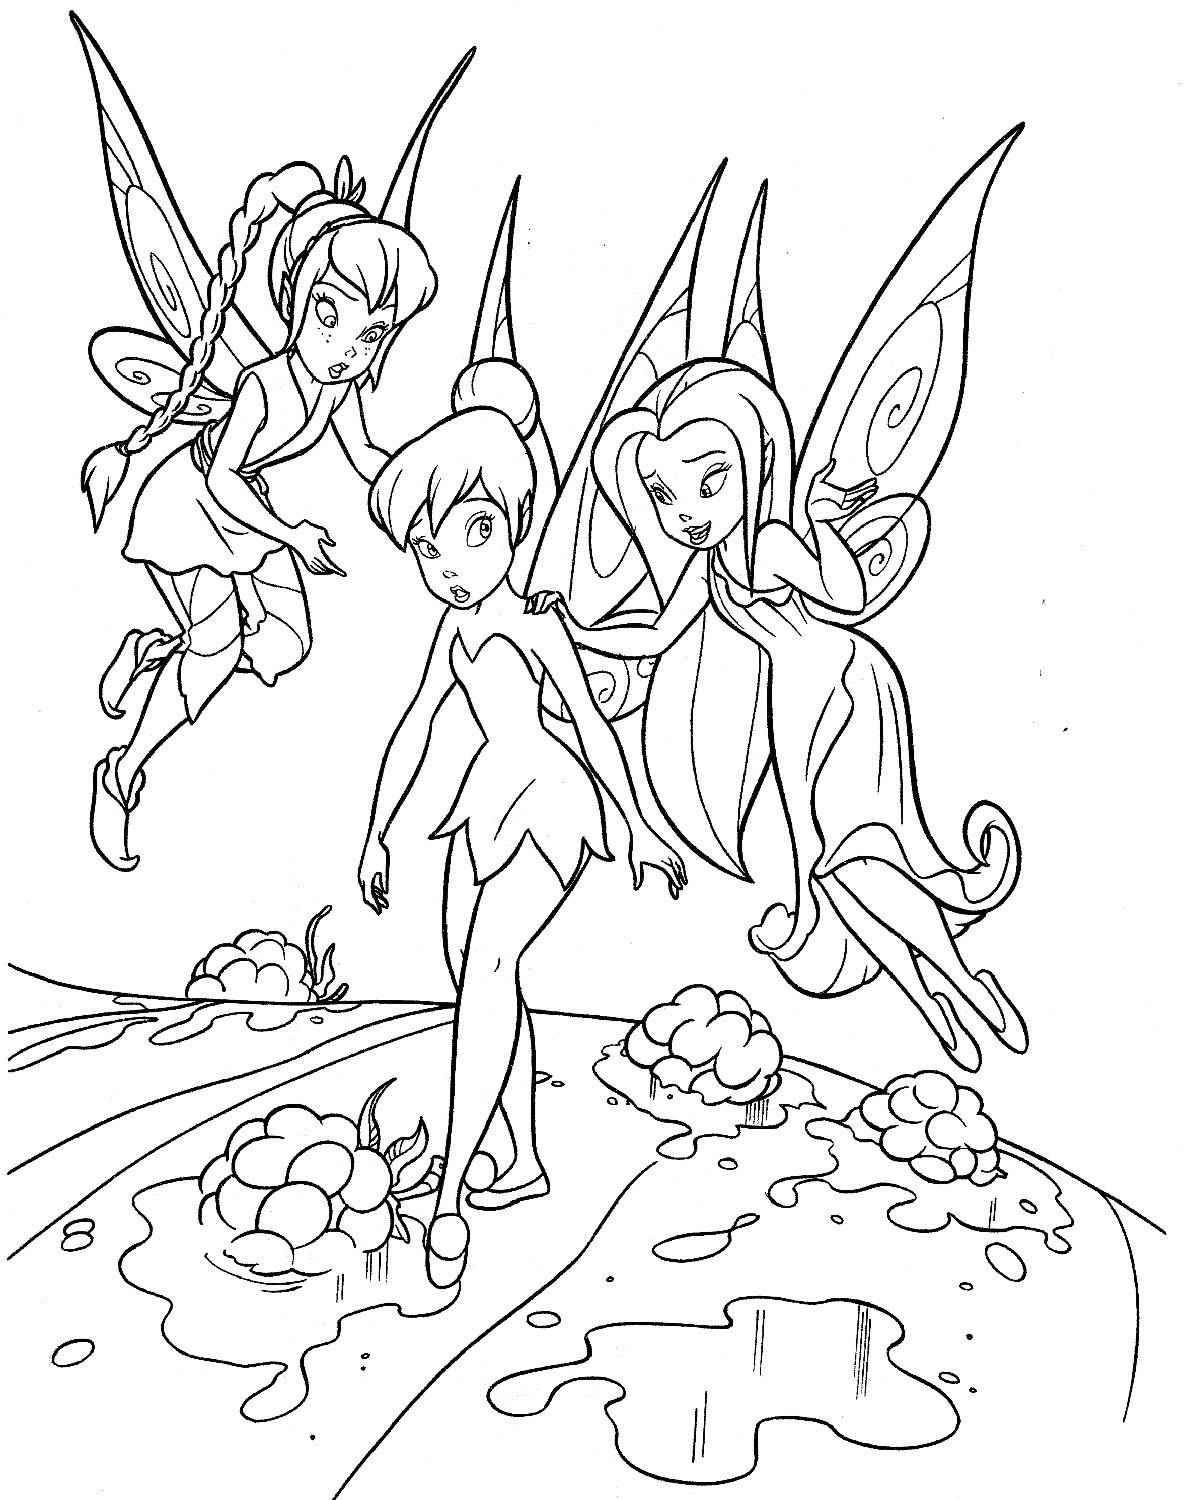 Tinkerbell Coloring Pages Inspiration Tinkerbell Coloring Pages 22  Coloring Kids Decorating Inspiration